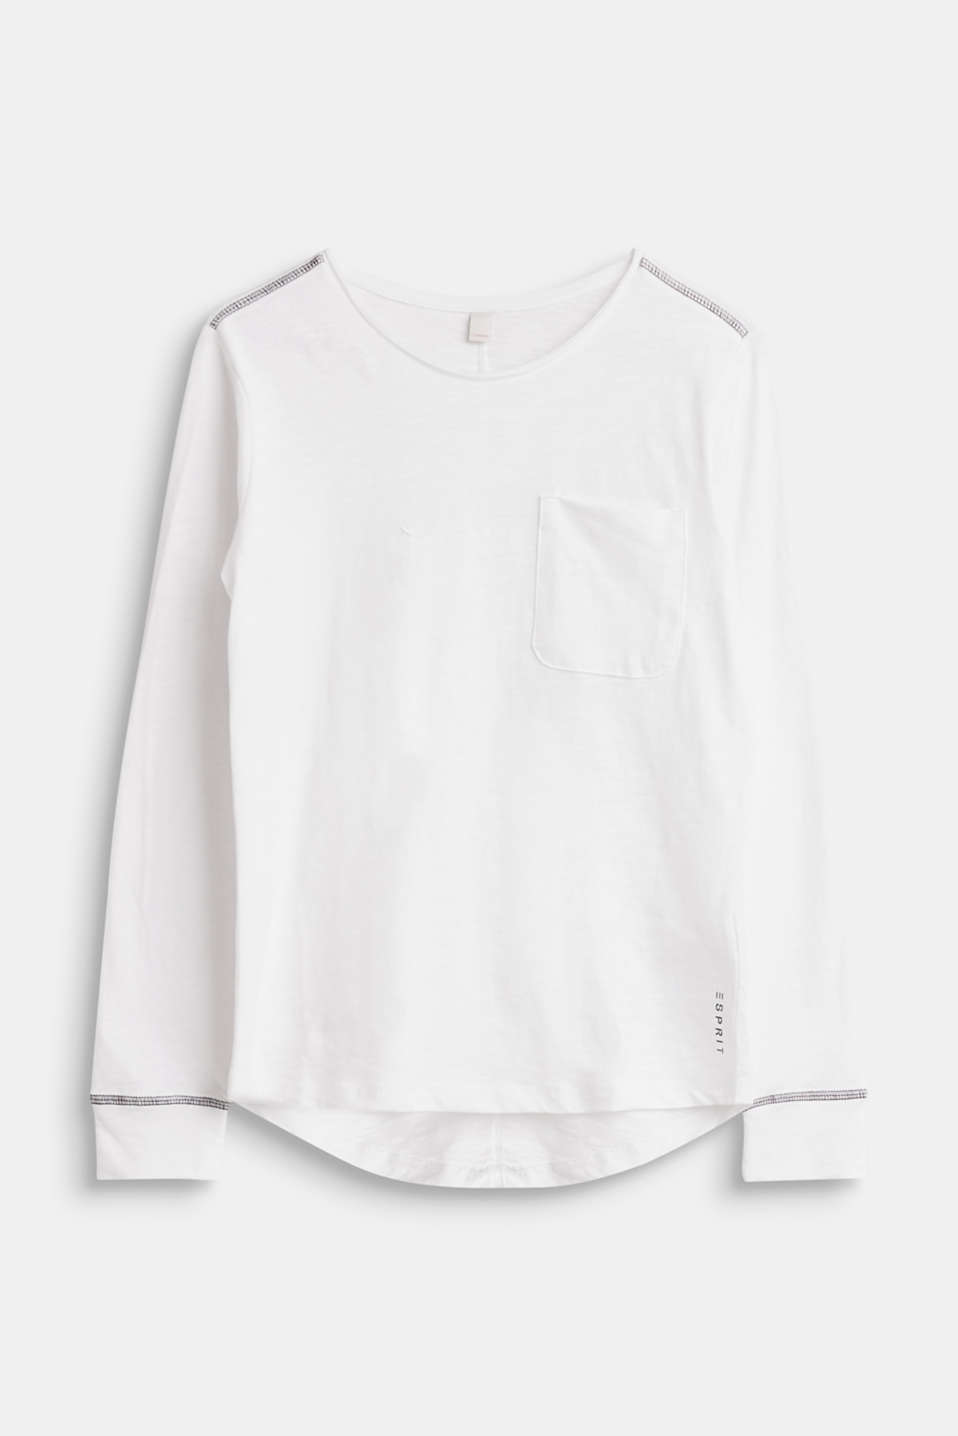 Esprit - Long sleeve slub top with a breast pocket, 100% cotton